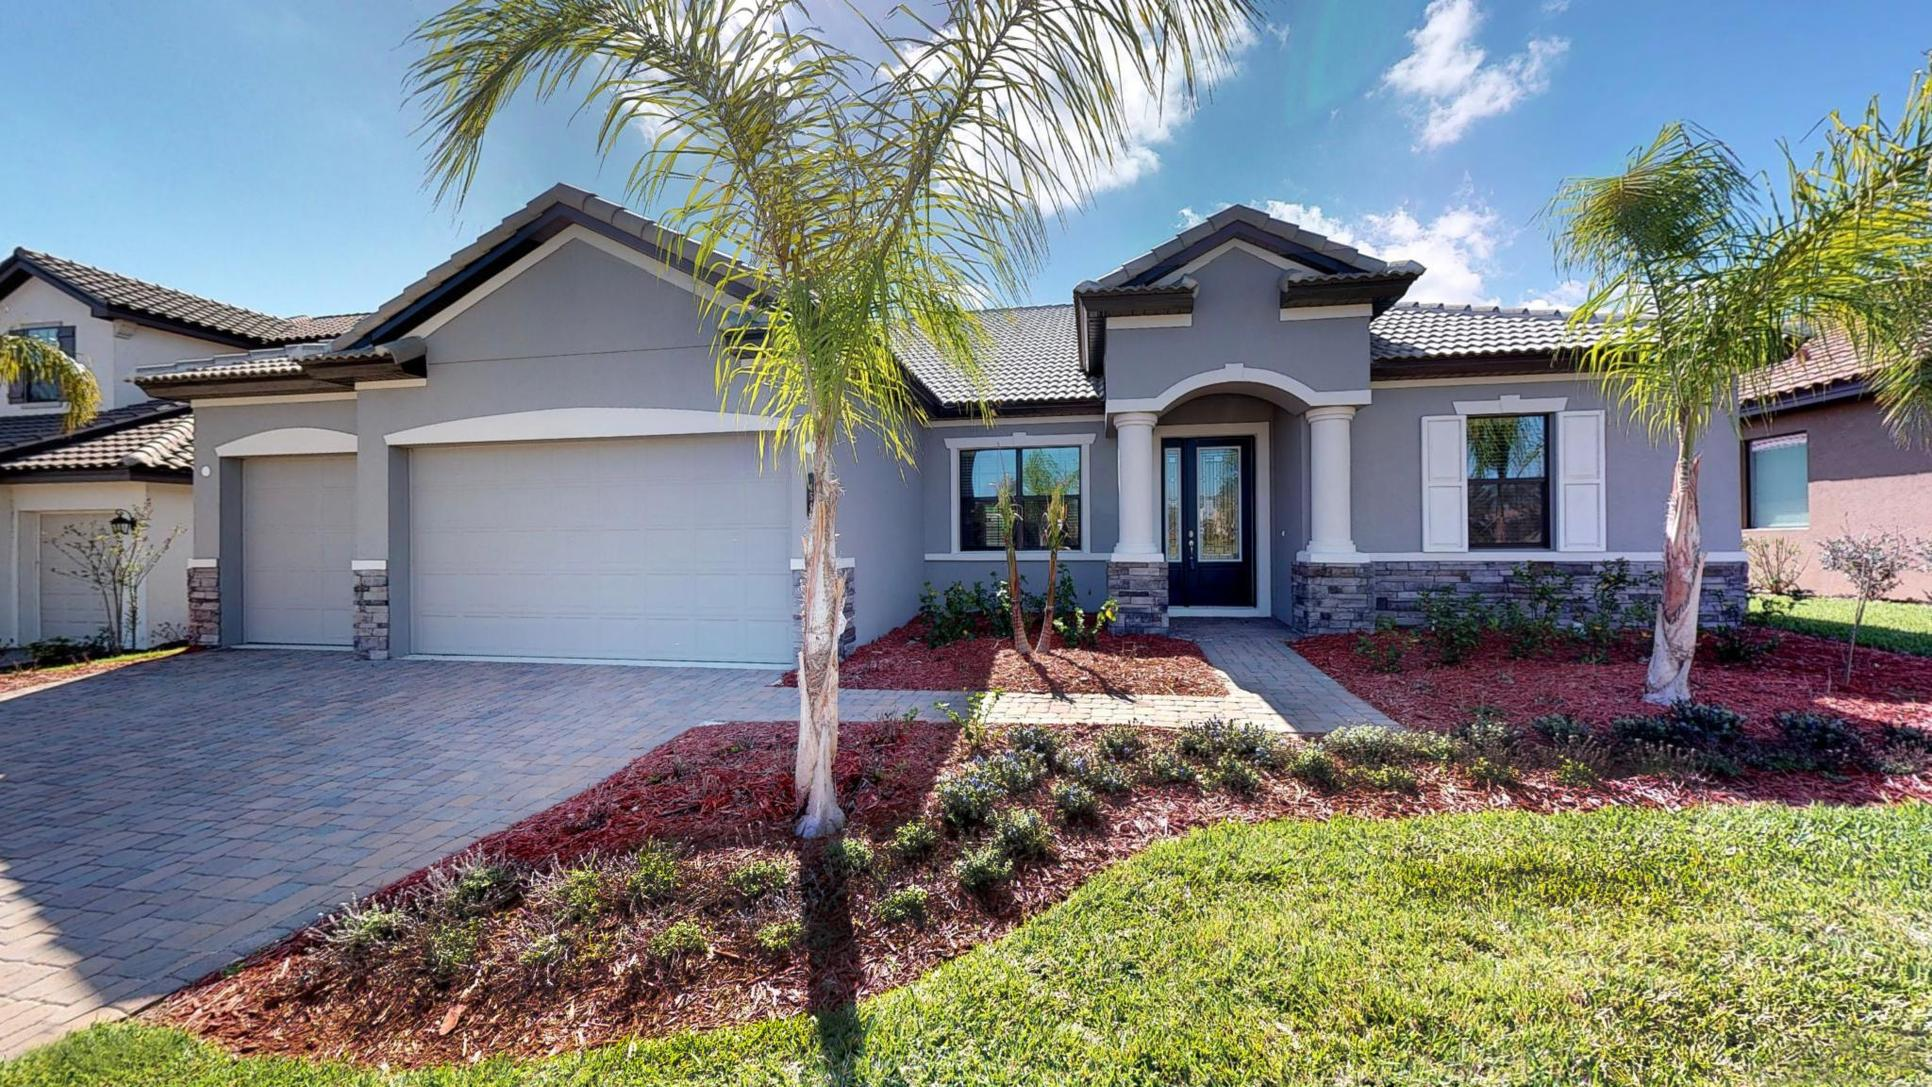 Cross Creek new single family homes for sale in Parrish FL the Carlingford by William Ryan Homes ...:Cross Creek - New Homes for Sale in Parrish, FL by William Ryan Homes - The Carlingford